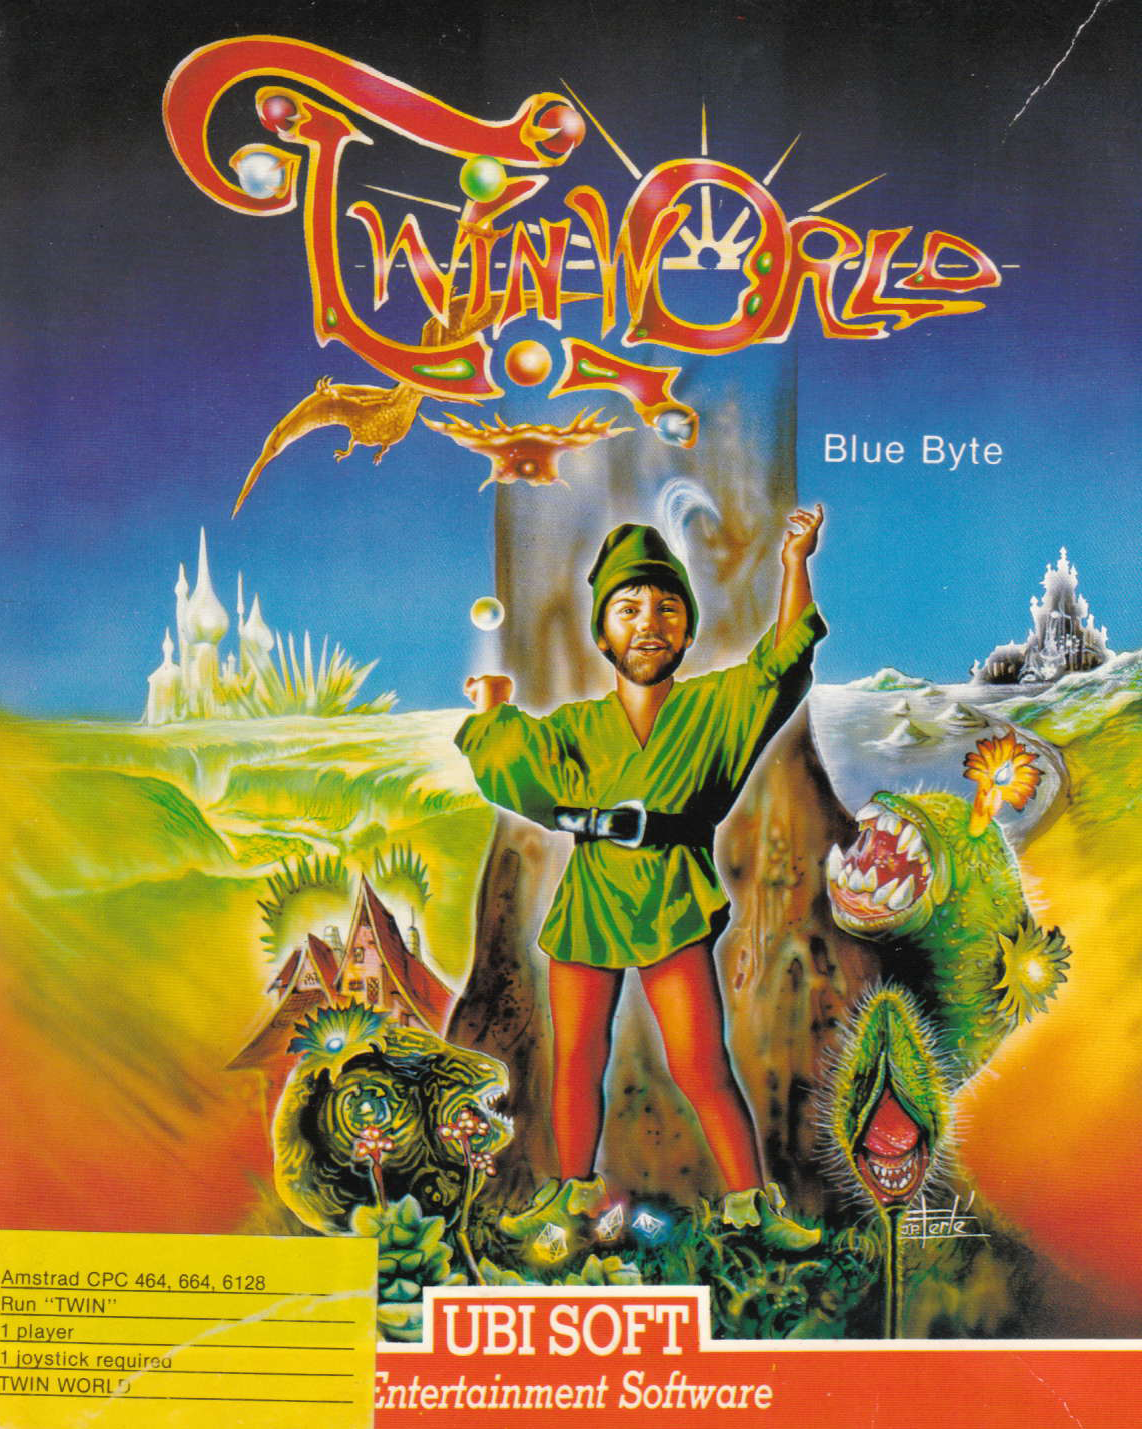 screenshot of the Amstrad CPC game Twinworld by GameBase CPC